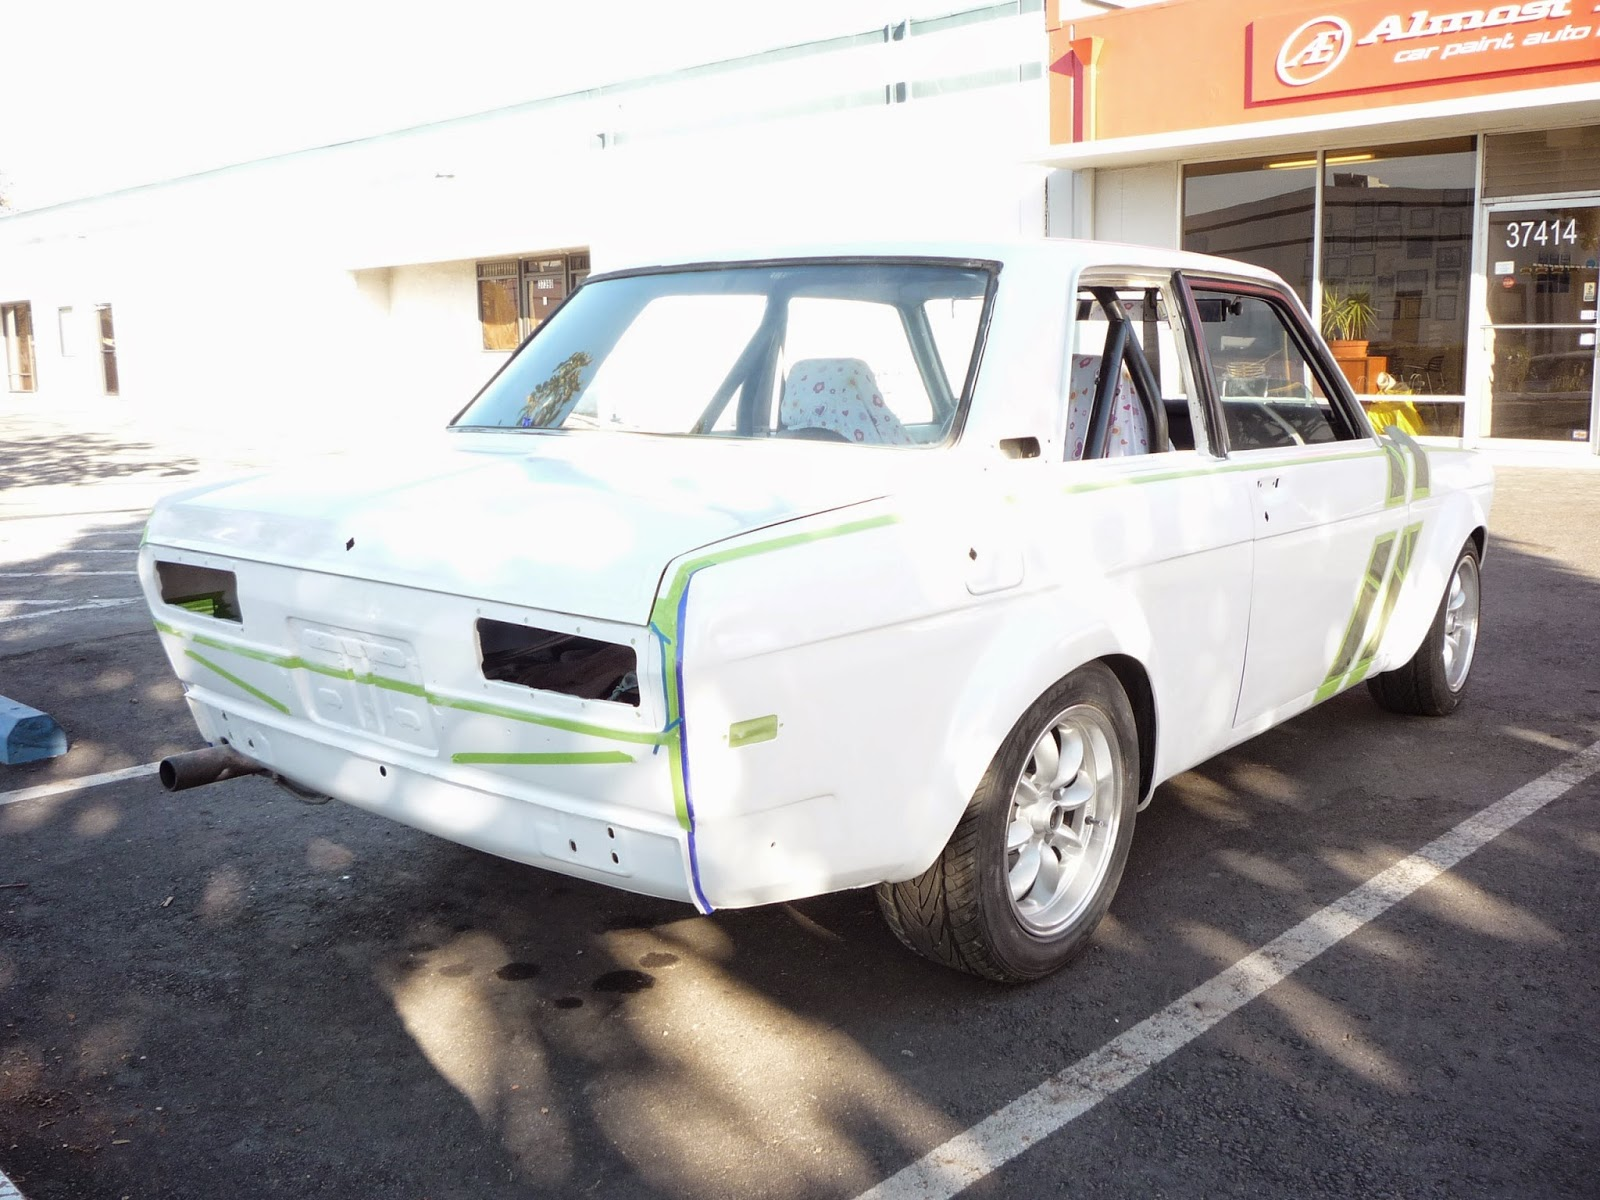 Auto body restoration of a 1971 Datsun 510